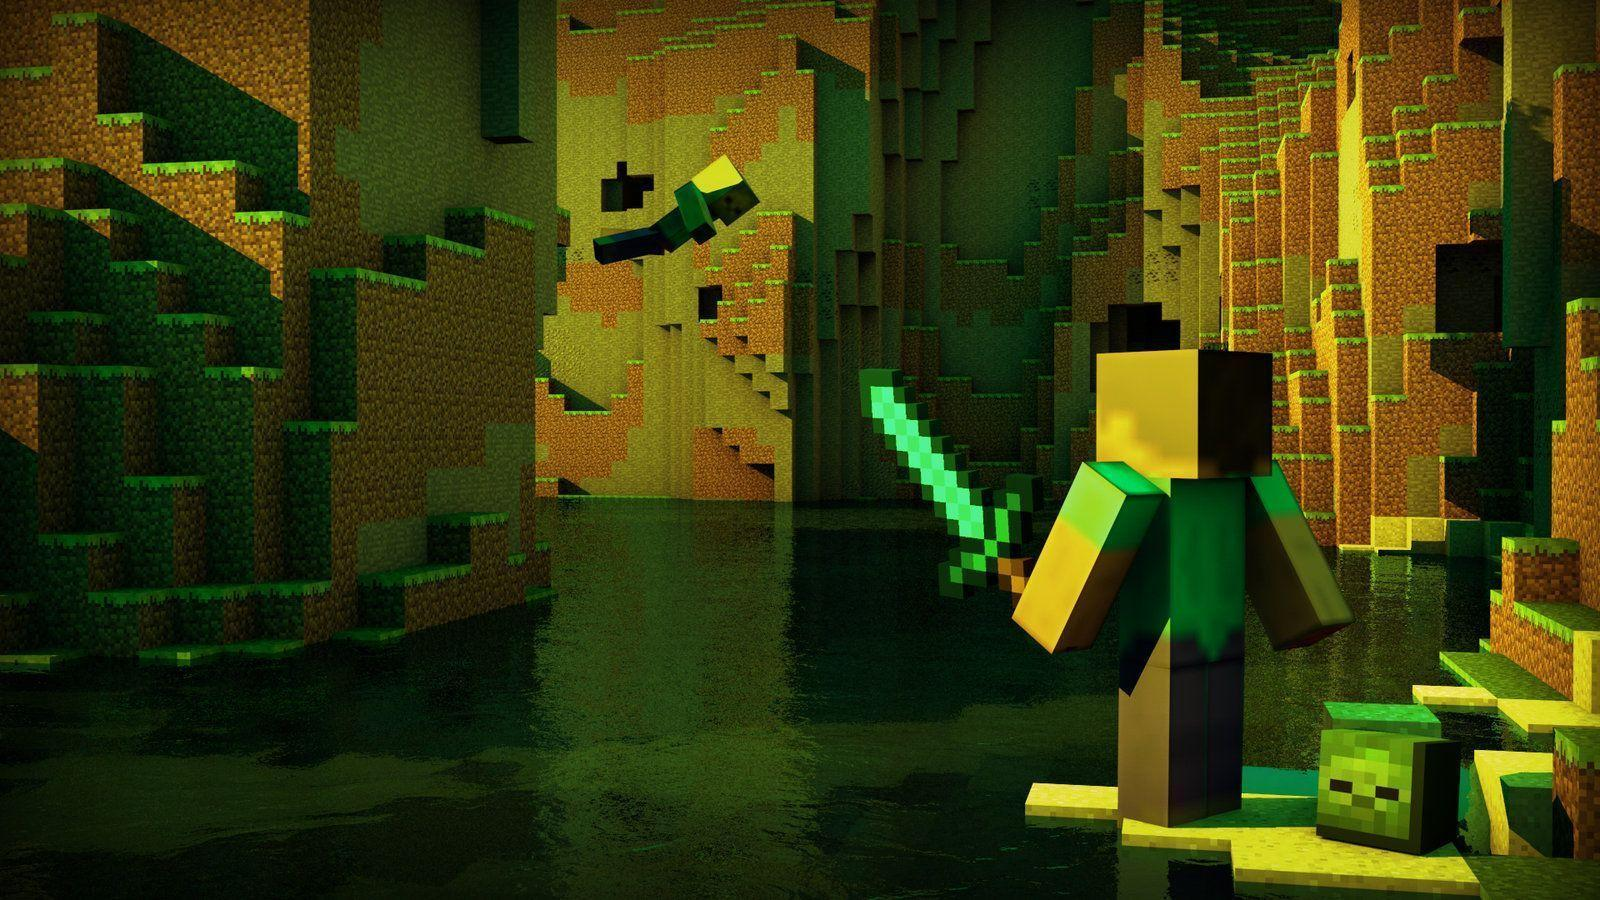 cool wallpapers of minecraft zombies - photo #2